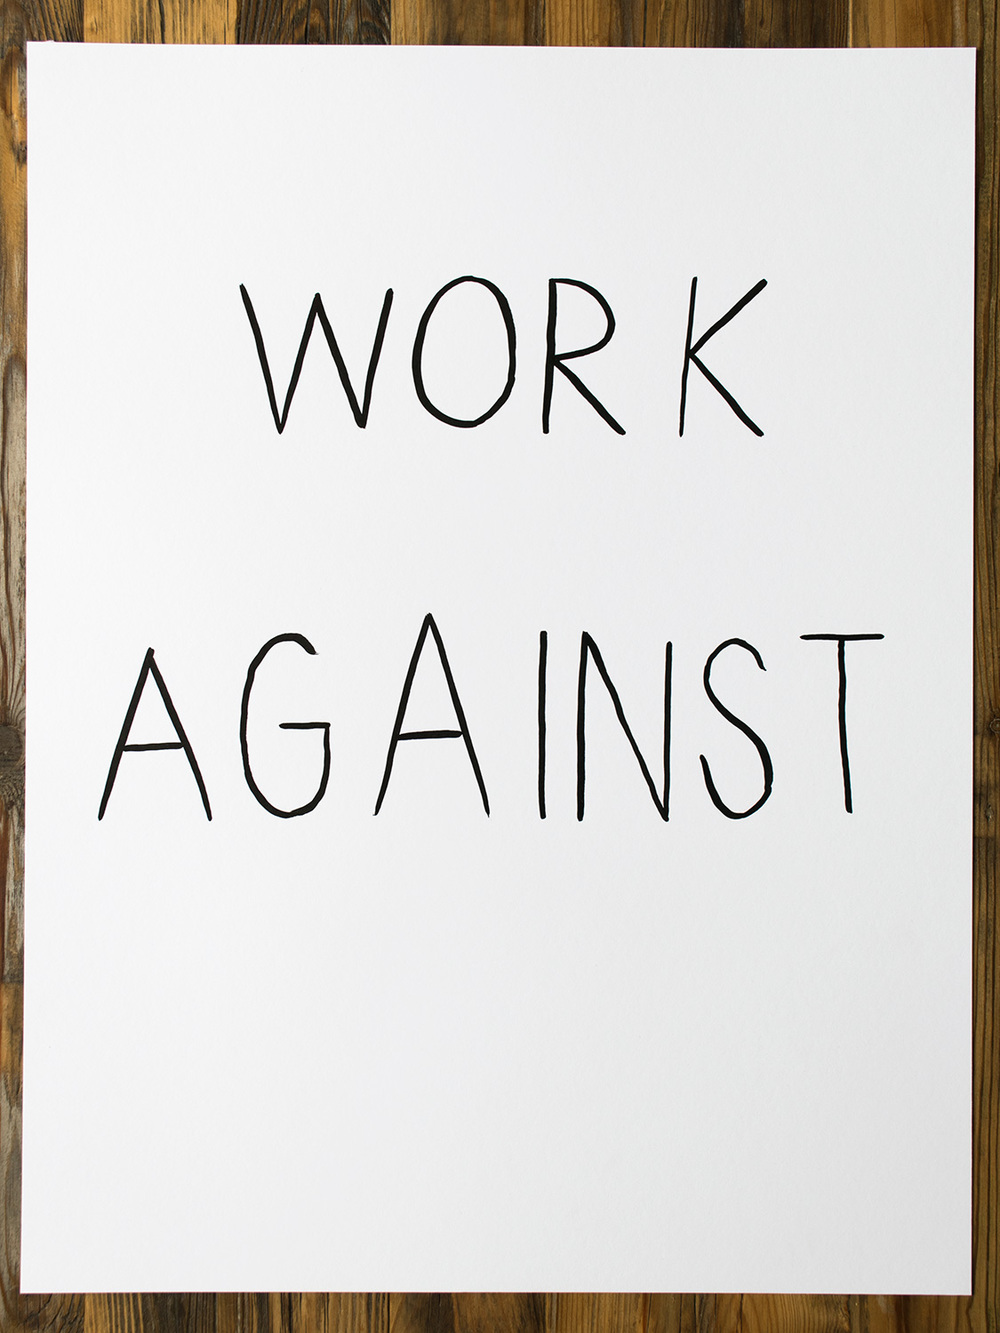 work_against-1500x1125.jpg